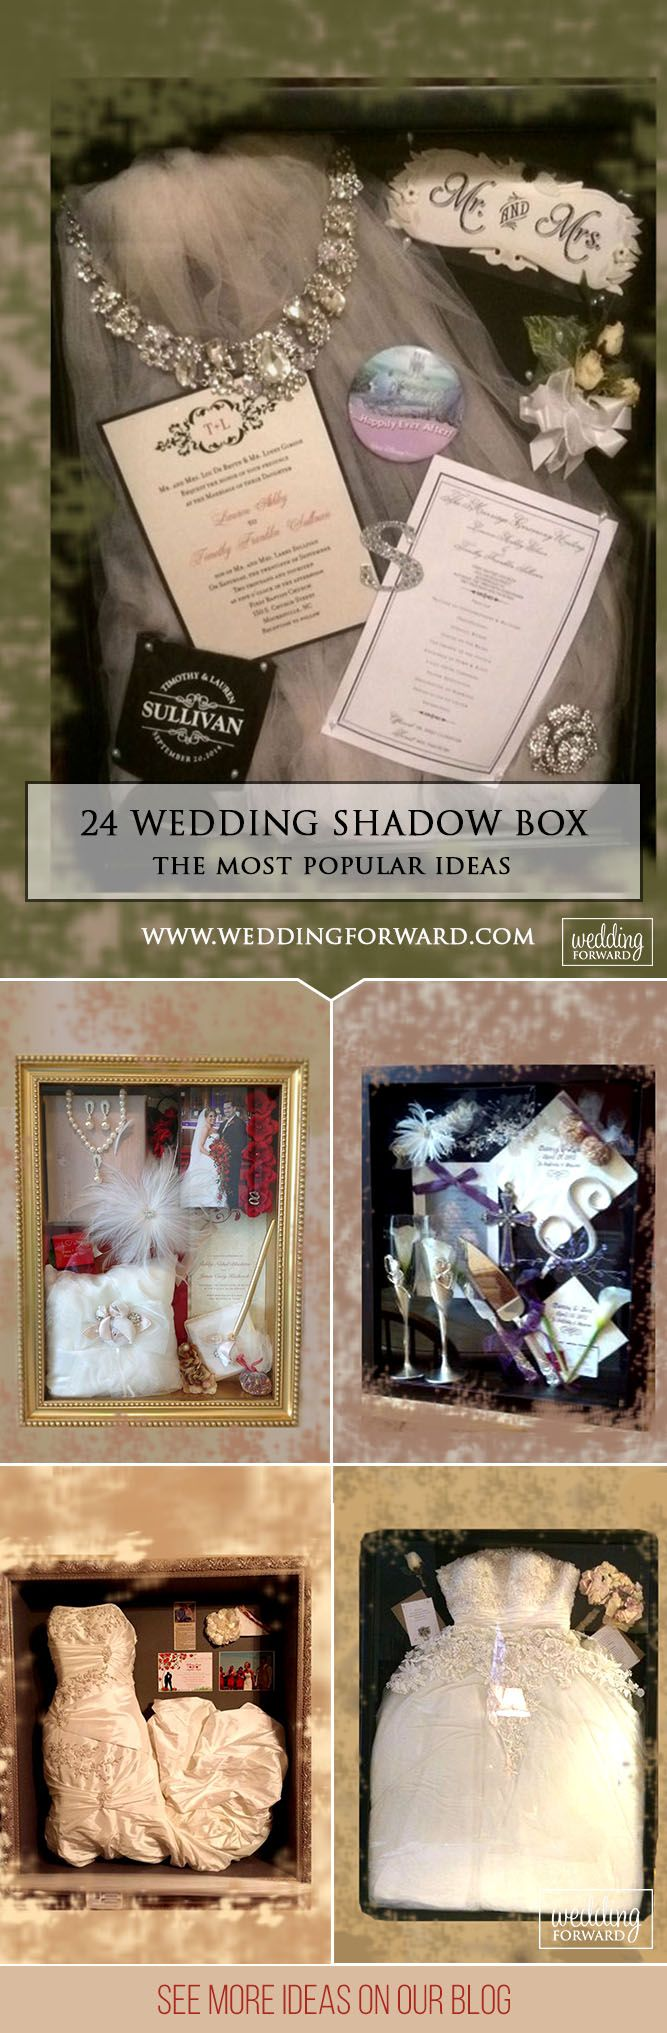 The Wedding Shadow Box Or How To Keep Your Memories ❤ A small box that holds the most wonderful memories of a special day. Many brides make it by yourself and gather in a wedding shadow box bouquet, a dress. See more: http://www.weddingforward.com/wedding-shadow-box/ ‎#wedding #decorations